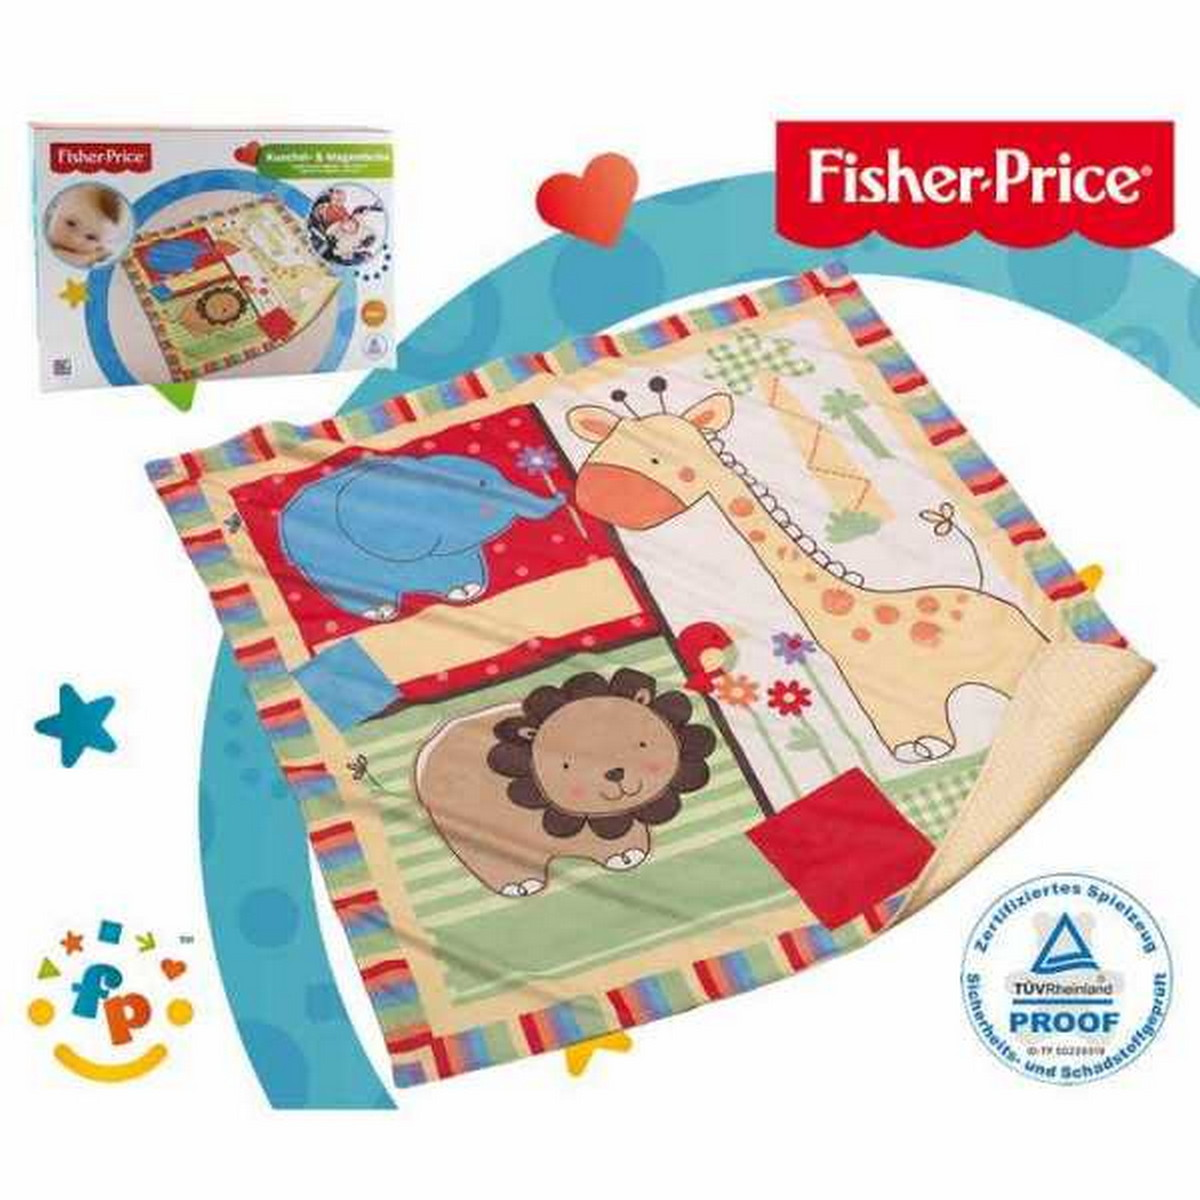 Fisher-Price Kuschel& Wagendecke bunt